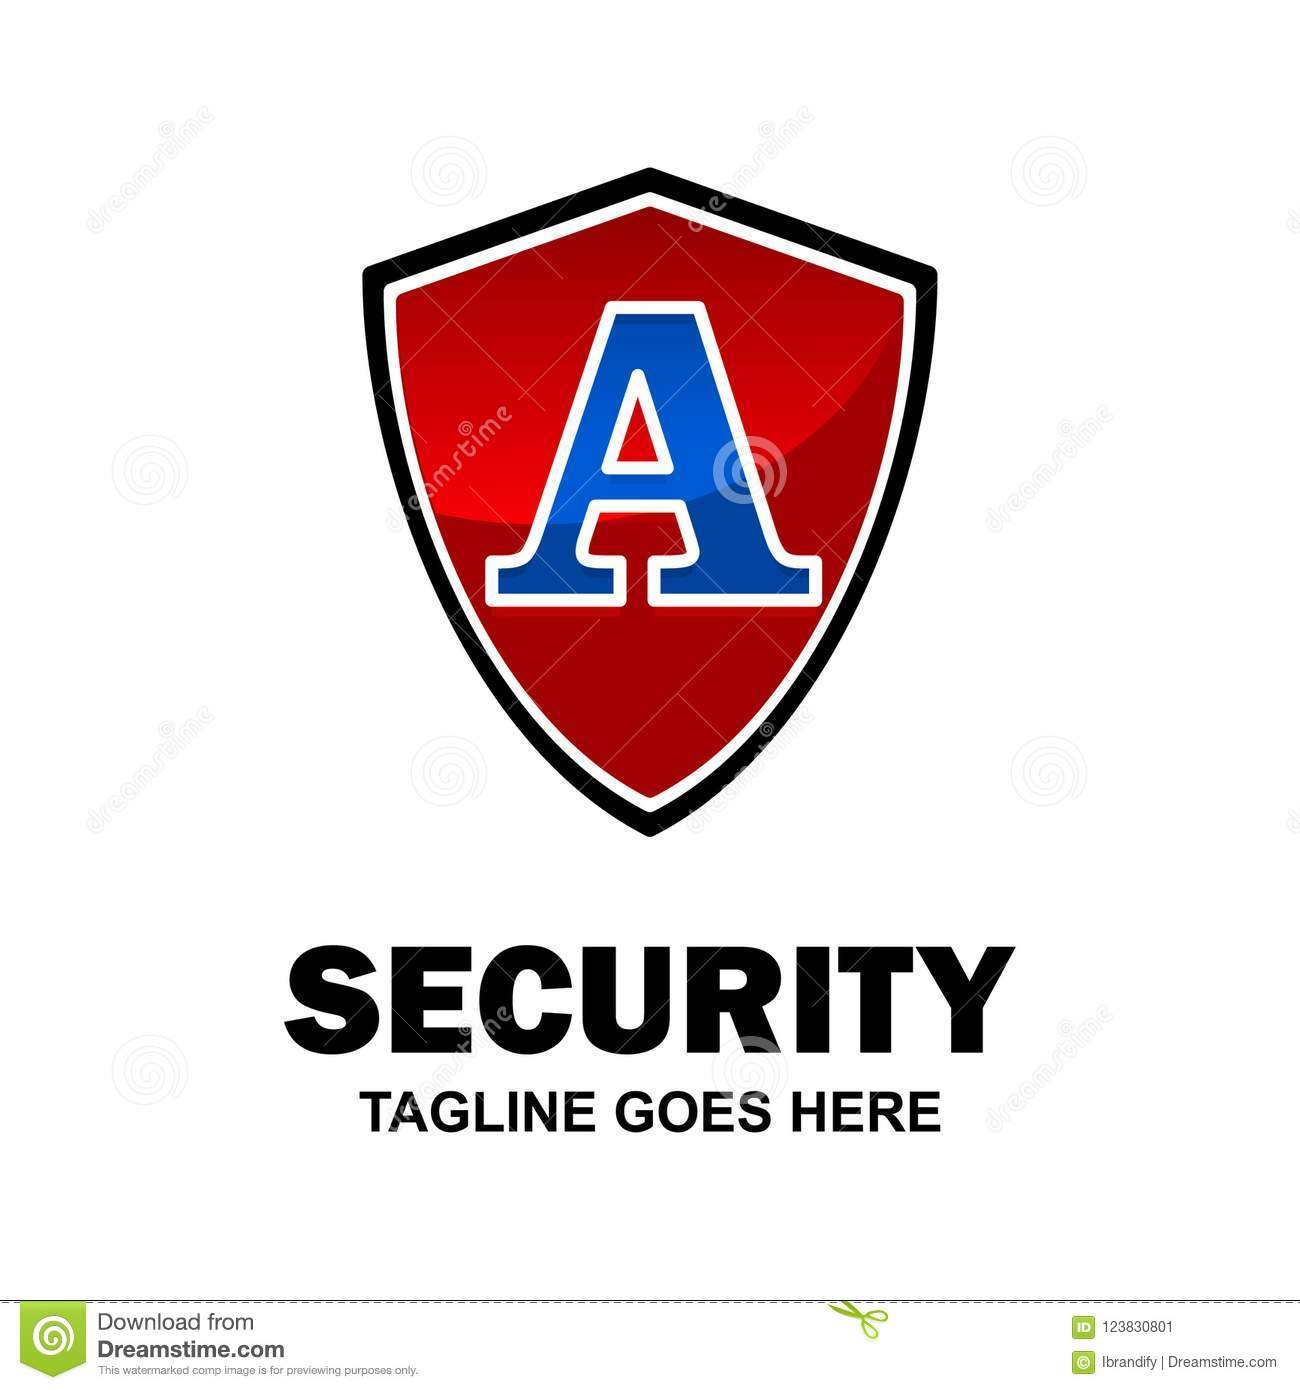 Alphabetical security logo design with creative typography vector